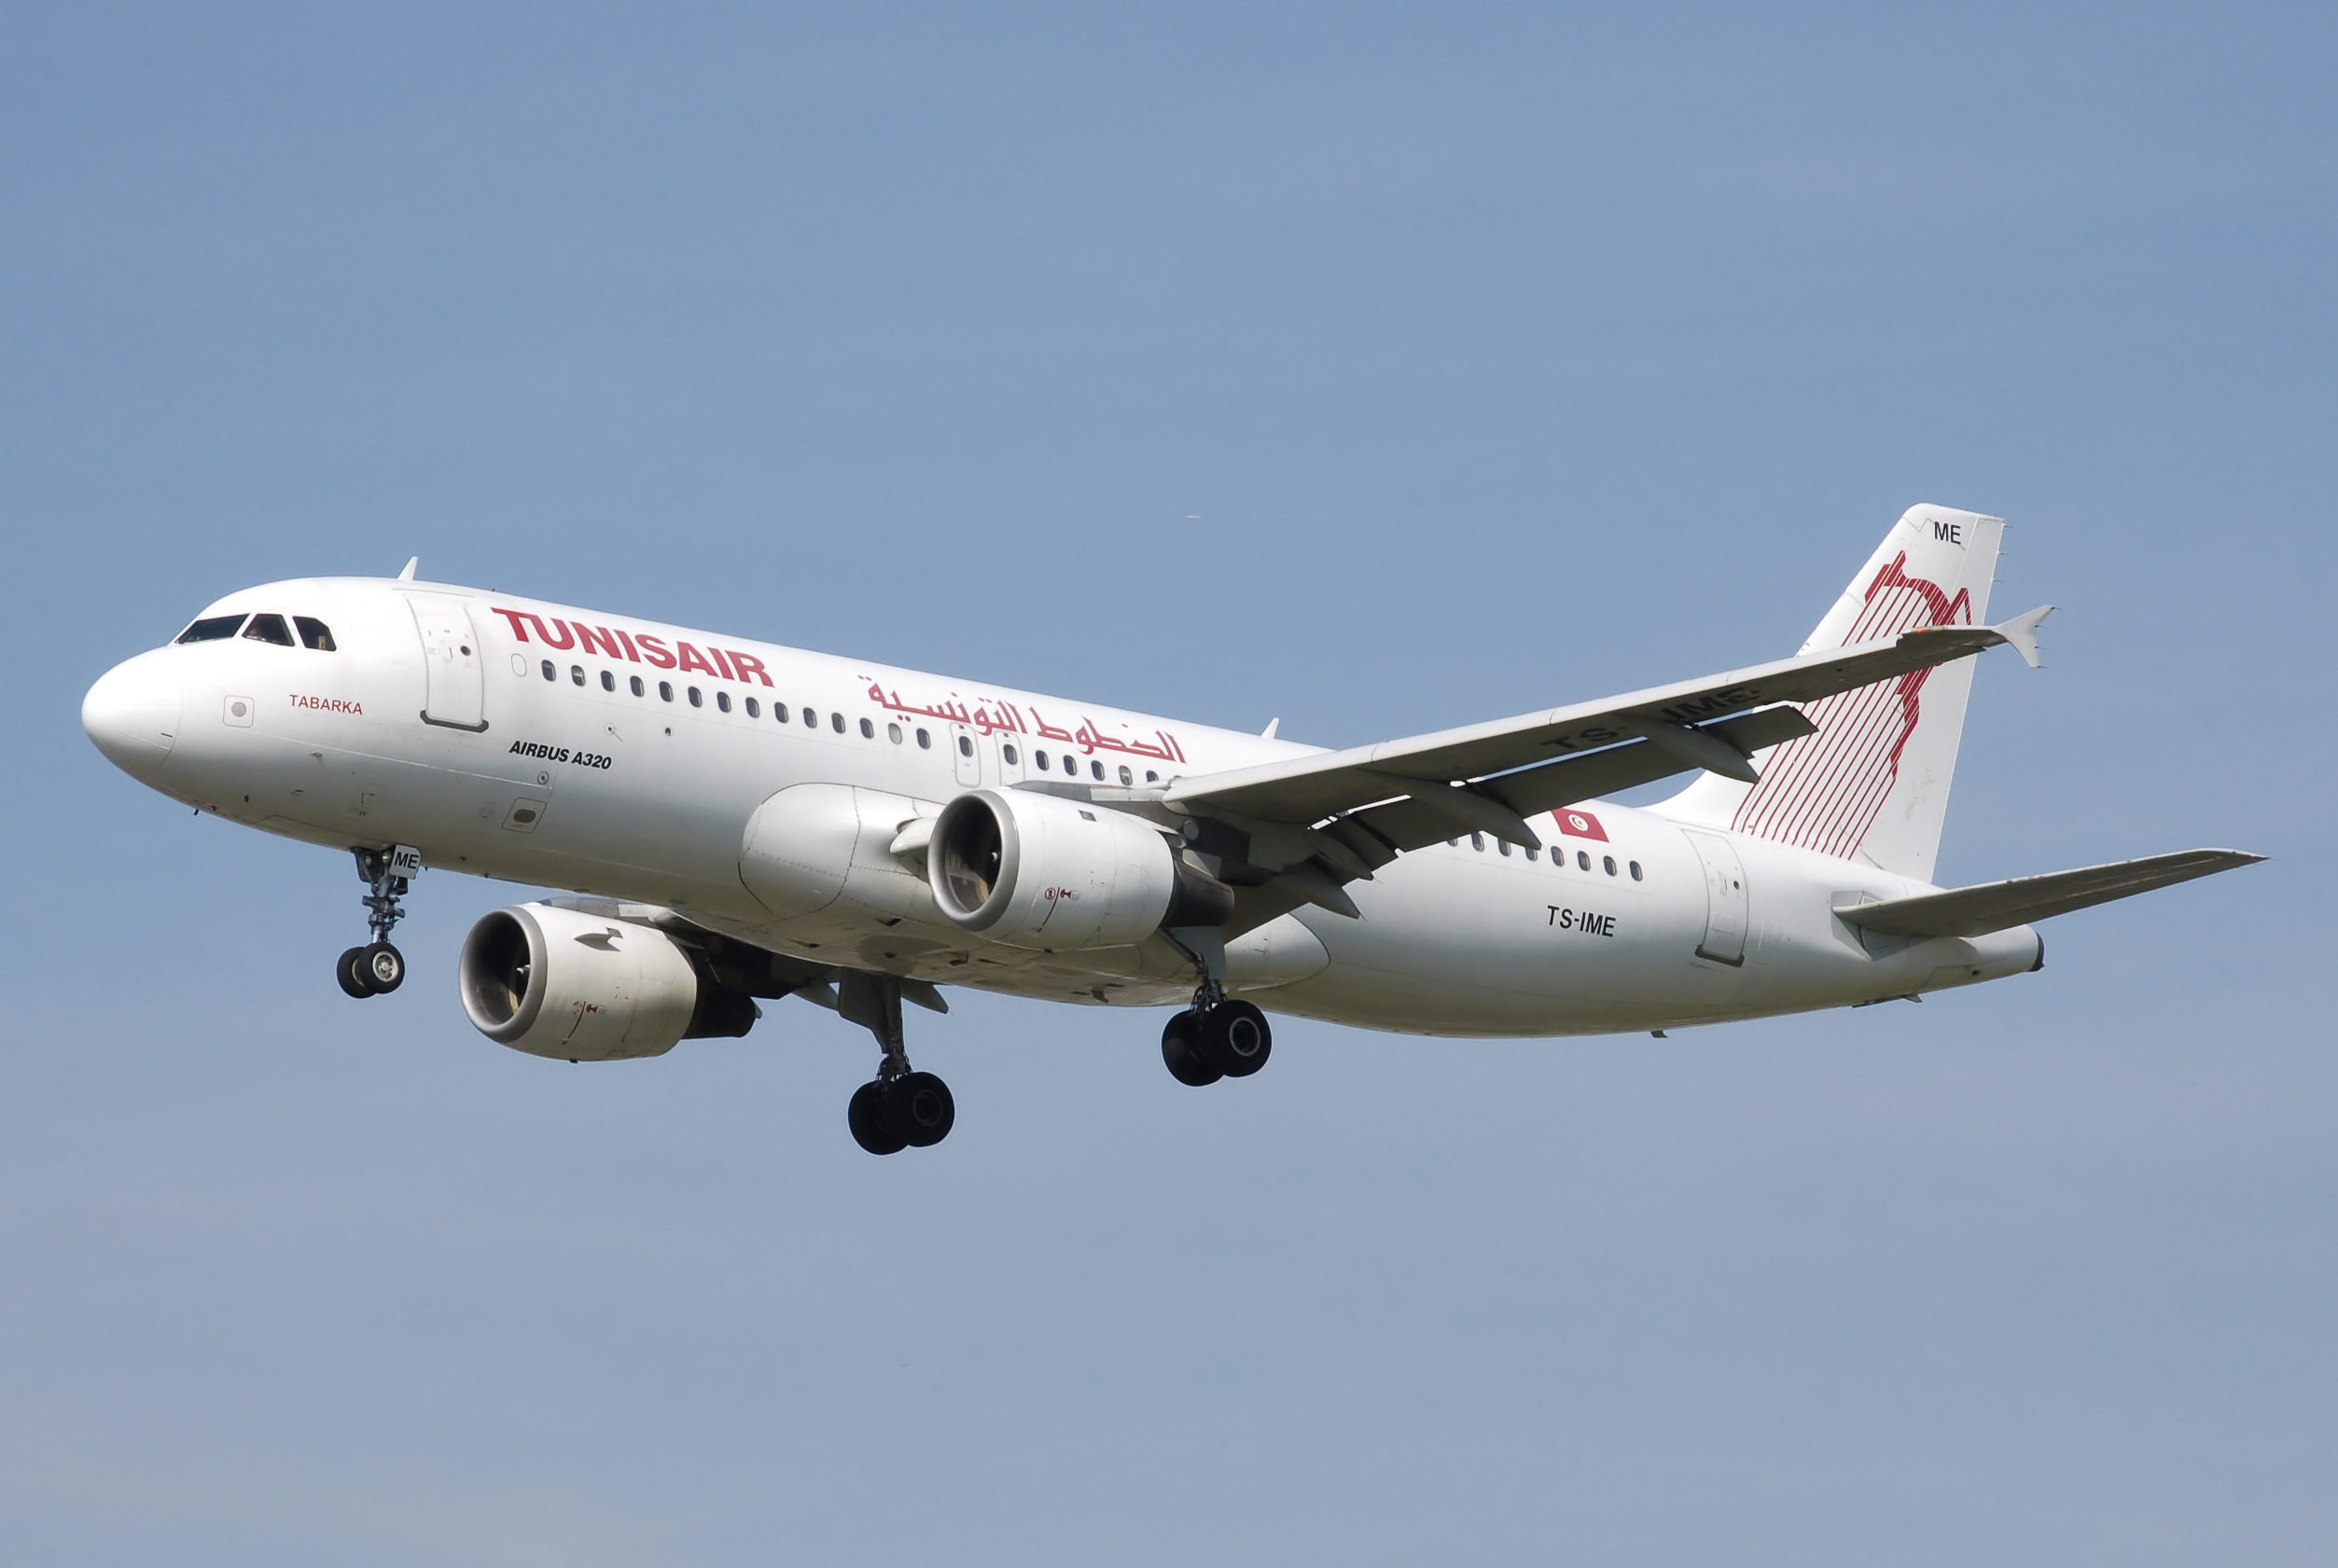 Tunisair might soon face bankruptcy if the state doesn't intervene